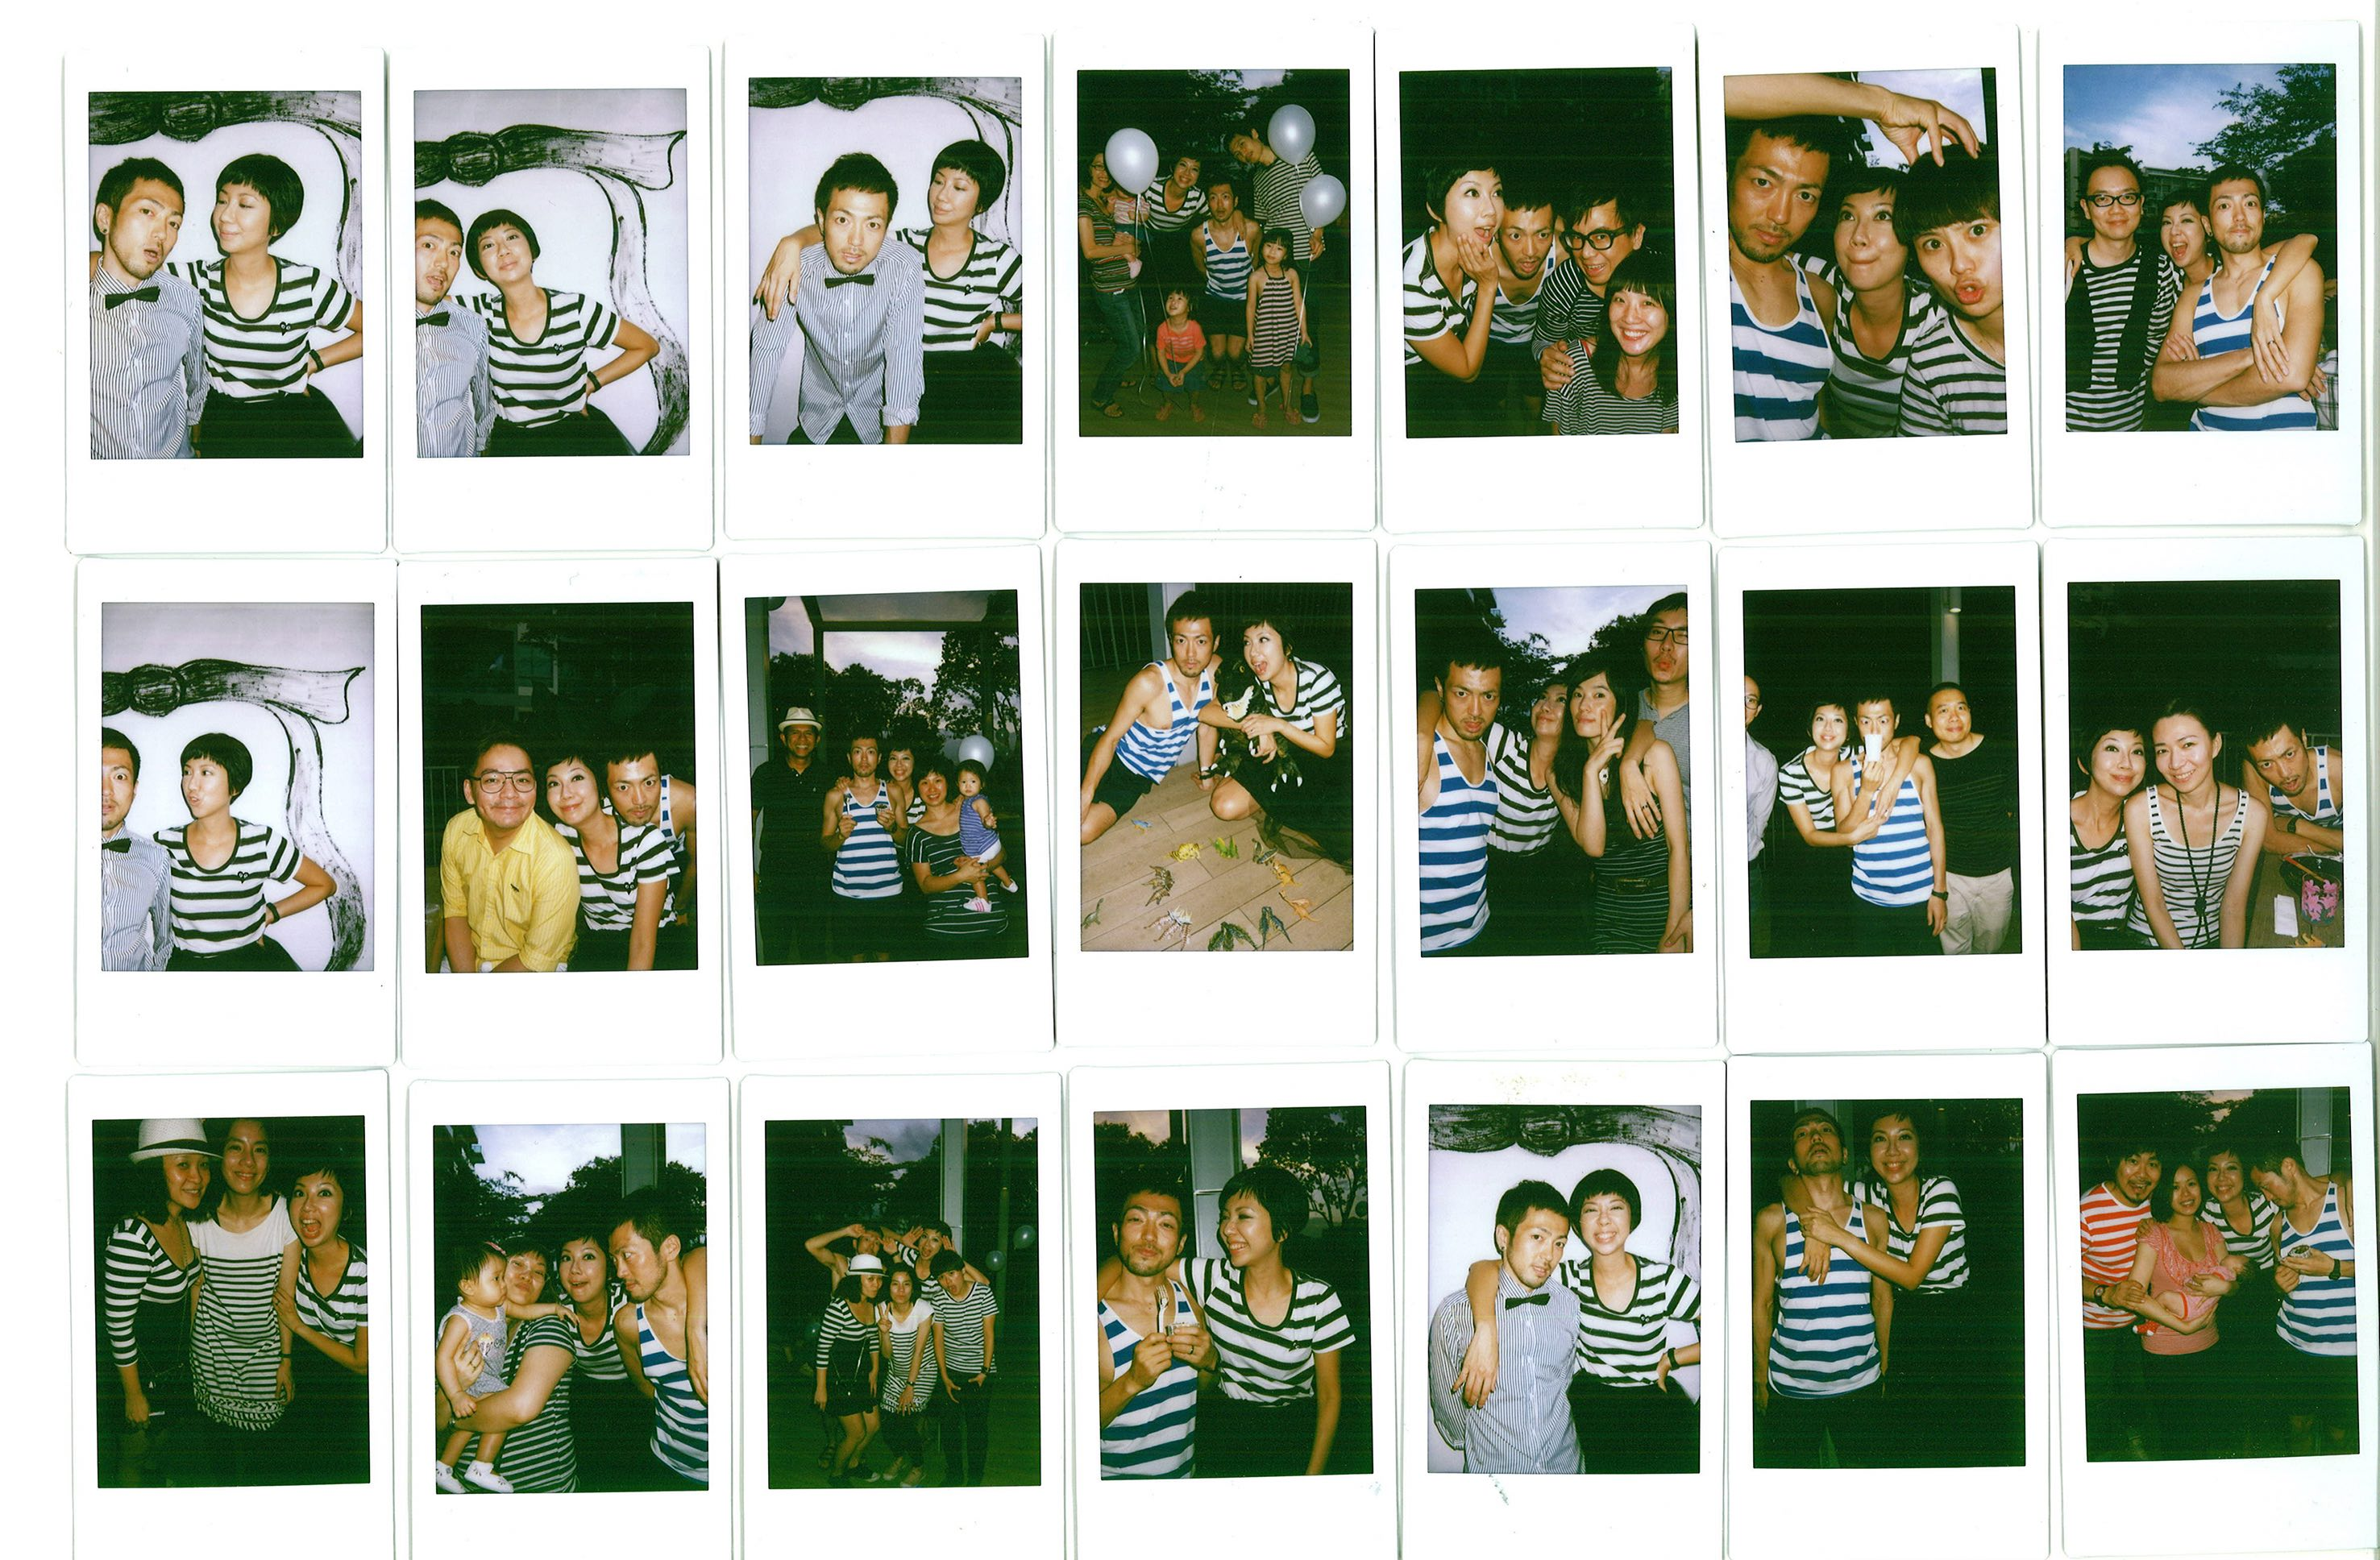 Polaroids of us and our wedding guests. The dress code was stripes, because I love striped clothing!